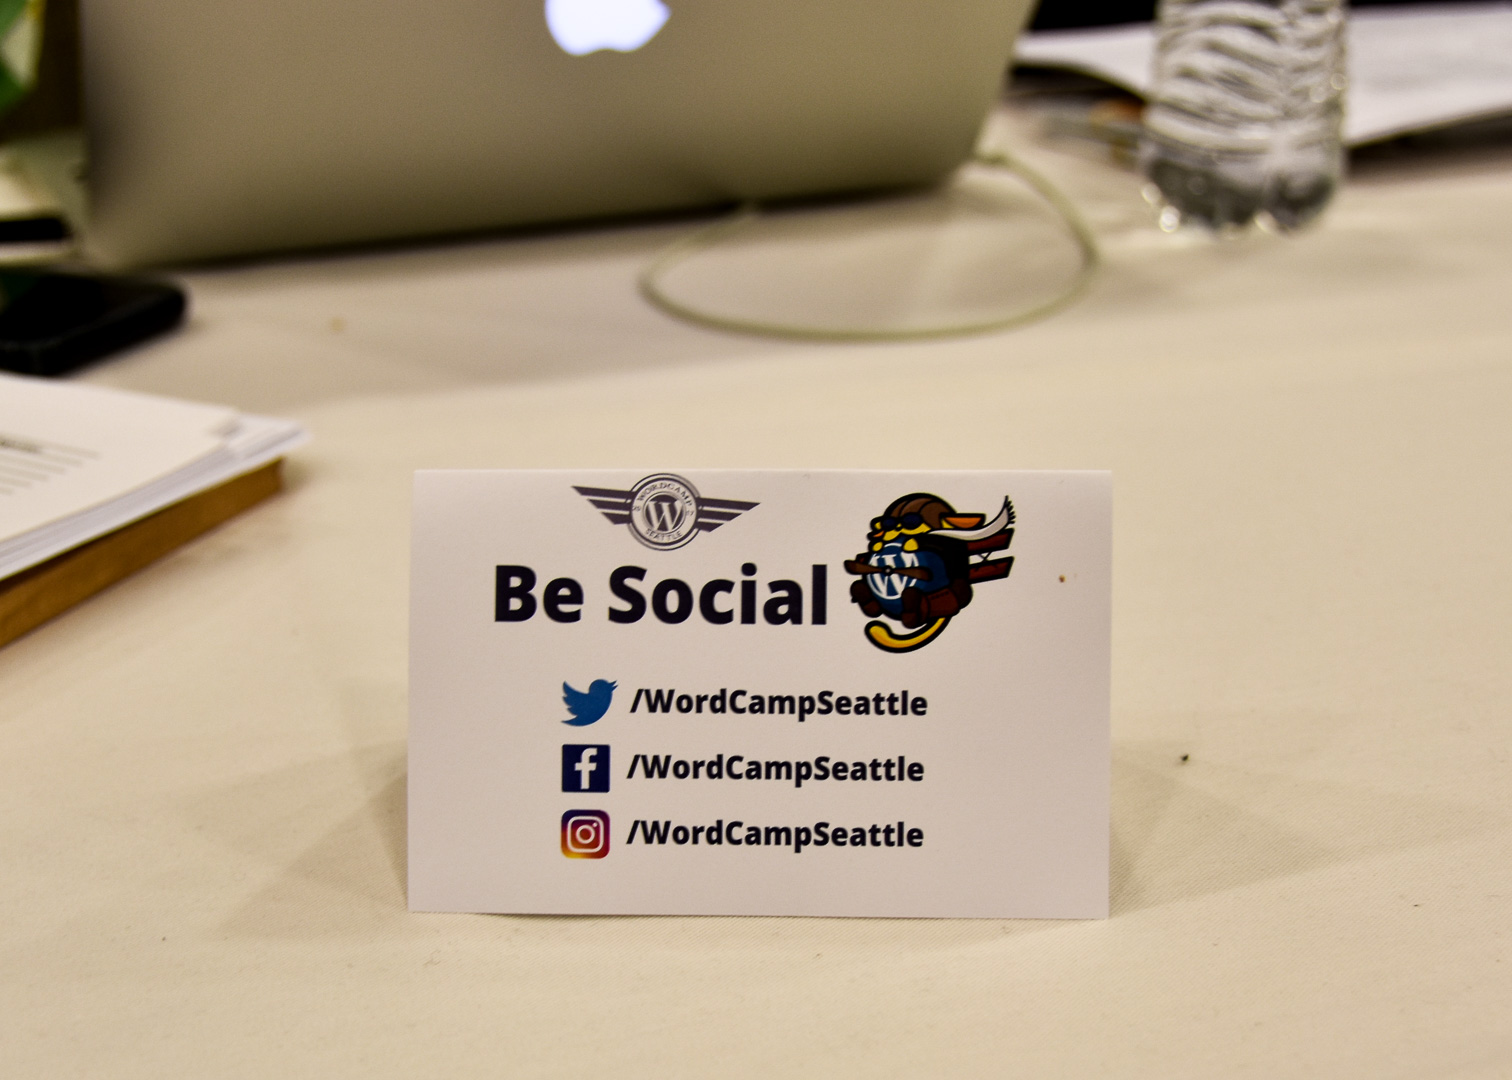 WordCamp Seattle, Be Social